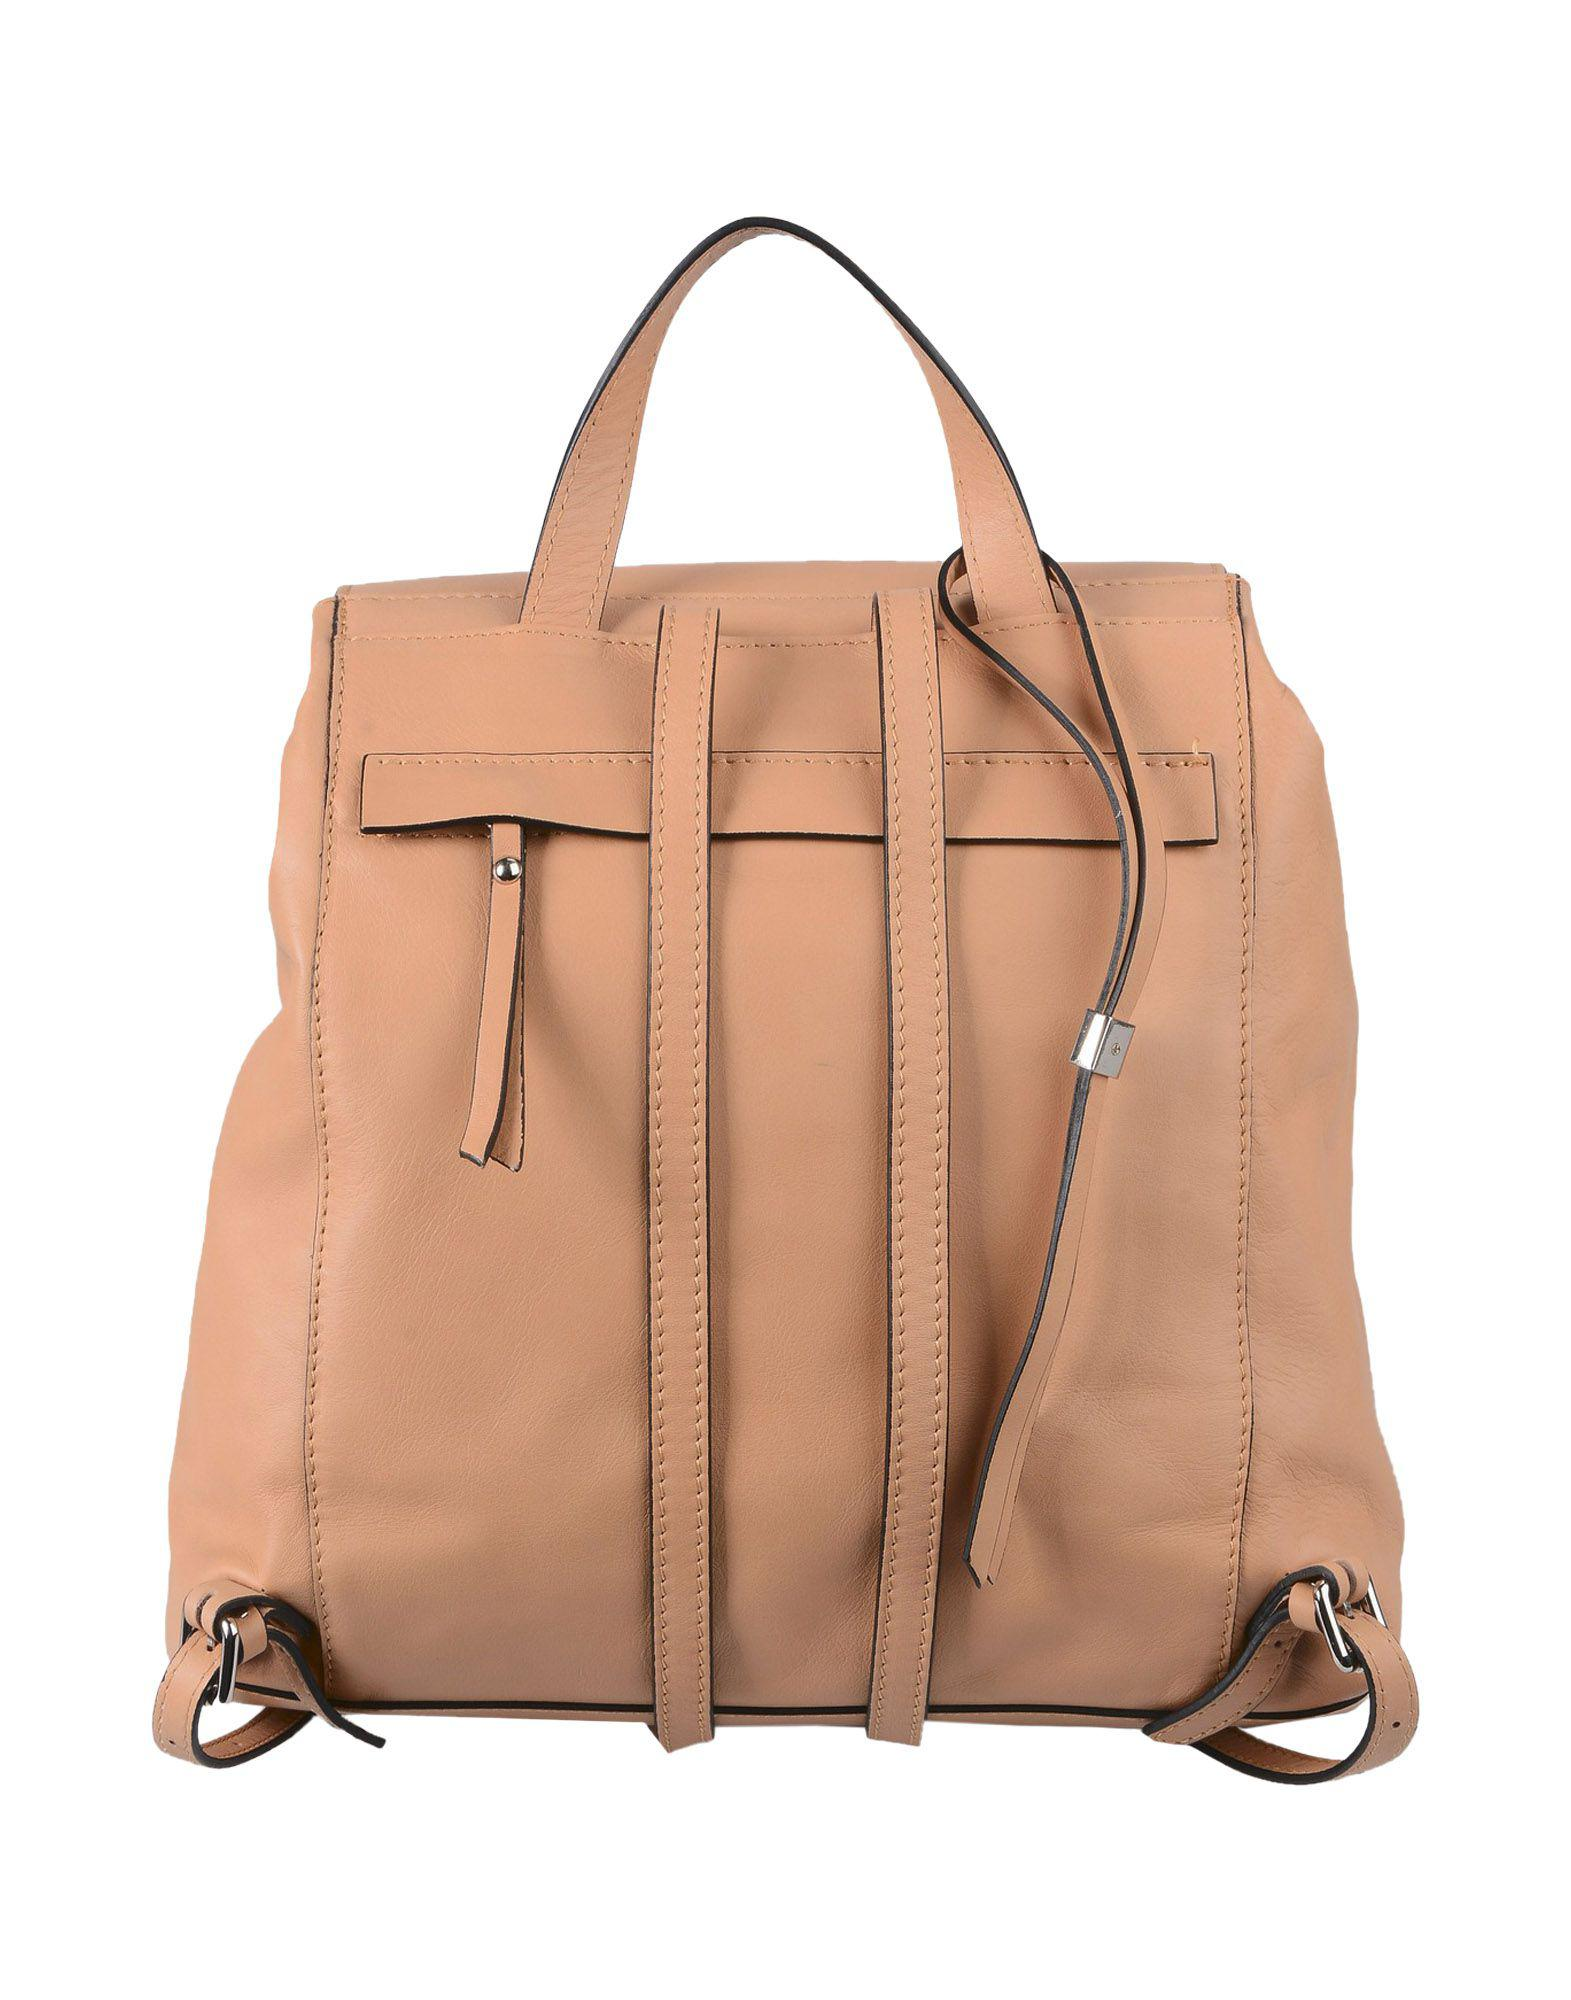 Gianni Chiarini Leather Backpacks & Fanny Packs in Camel (Natural)